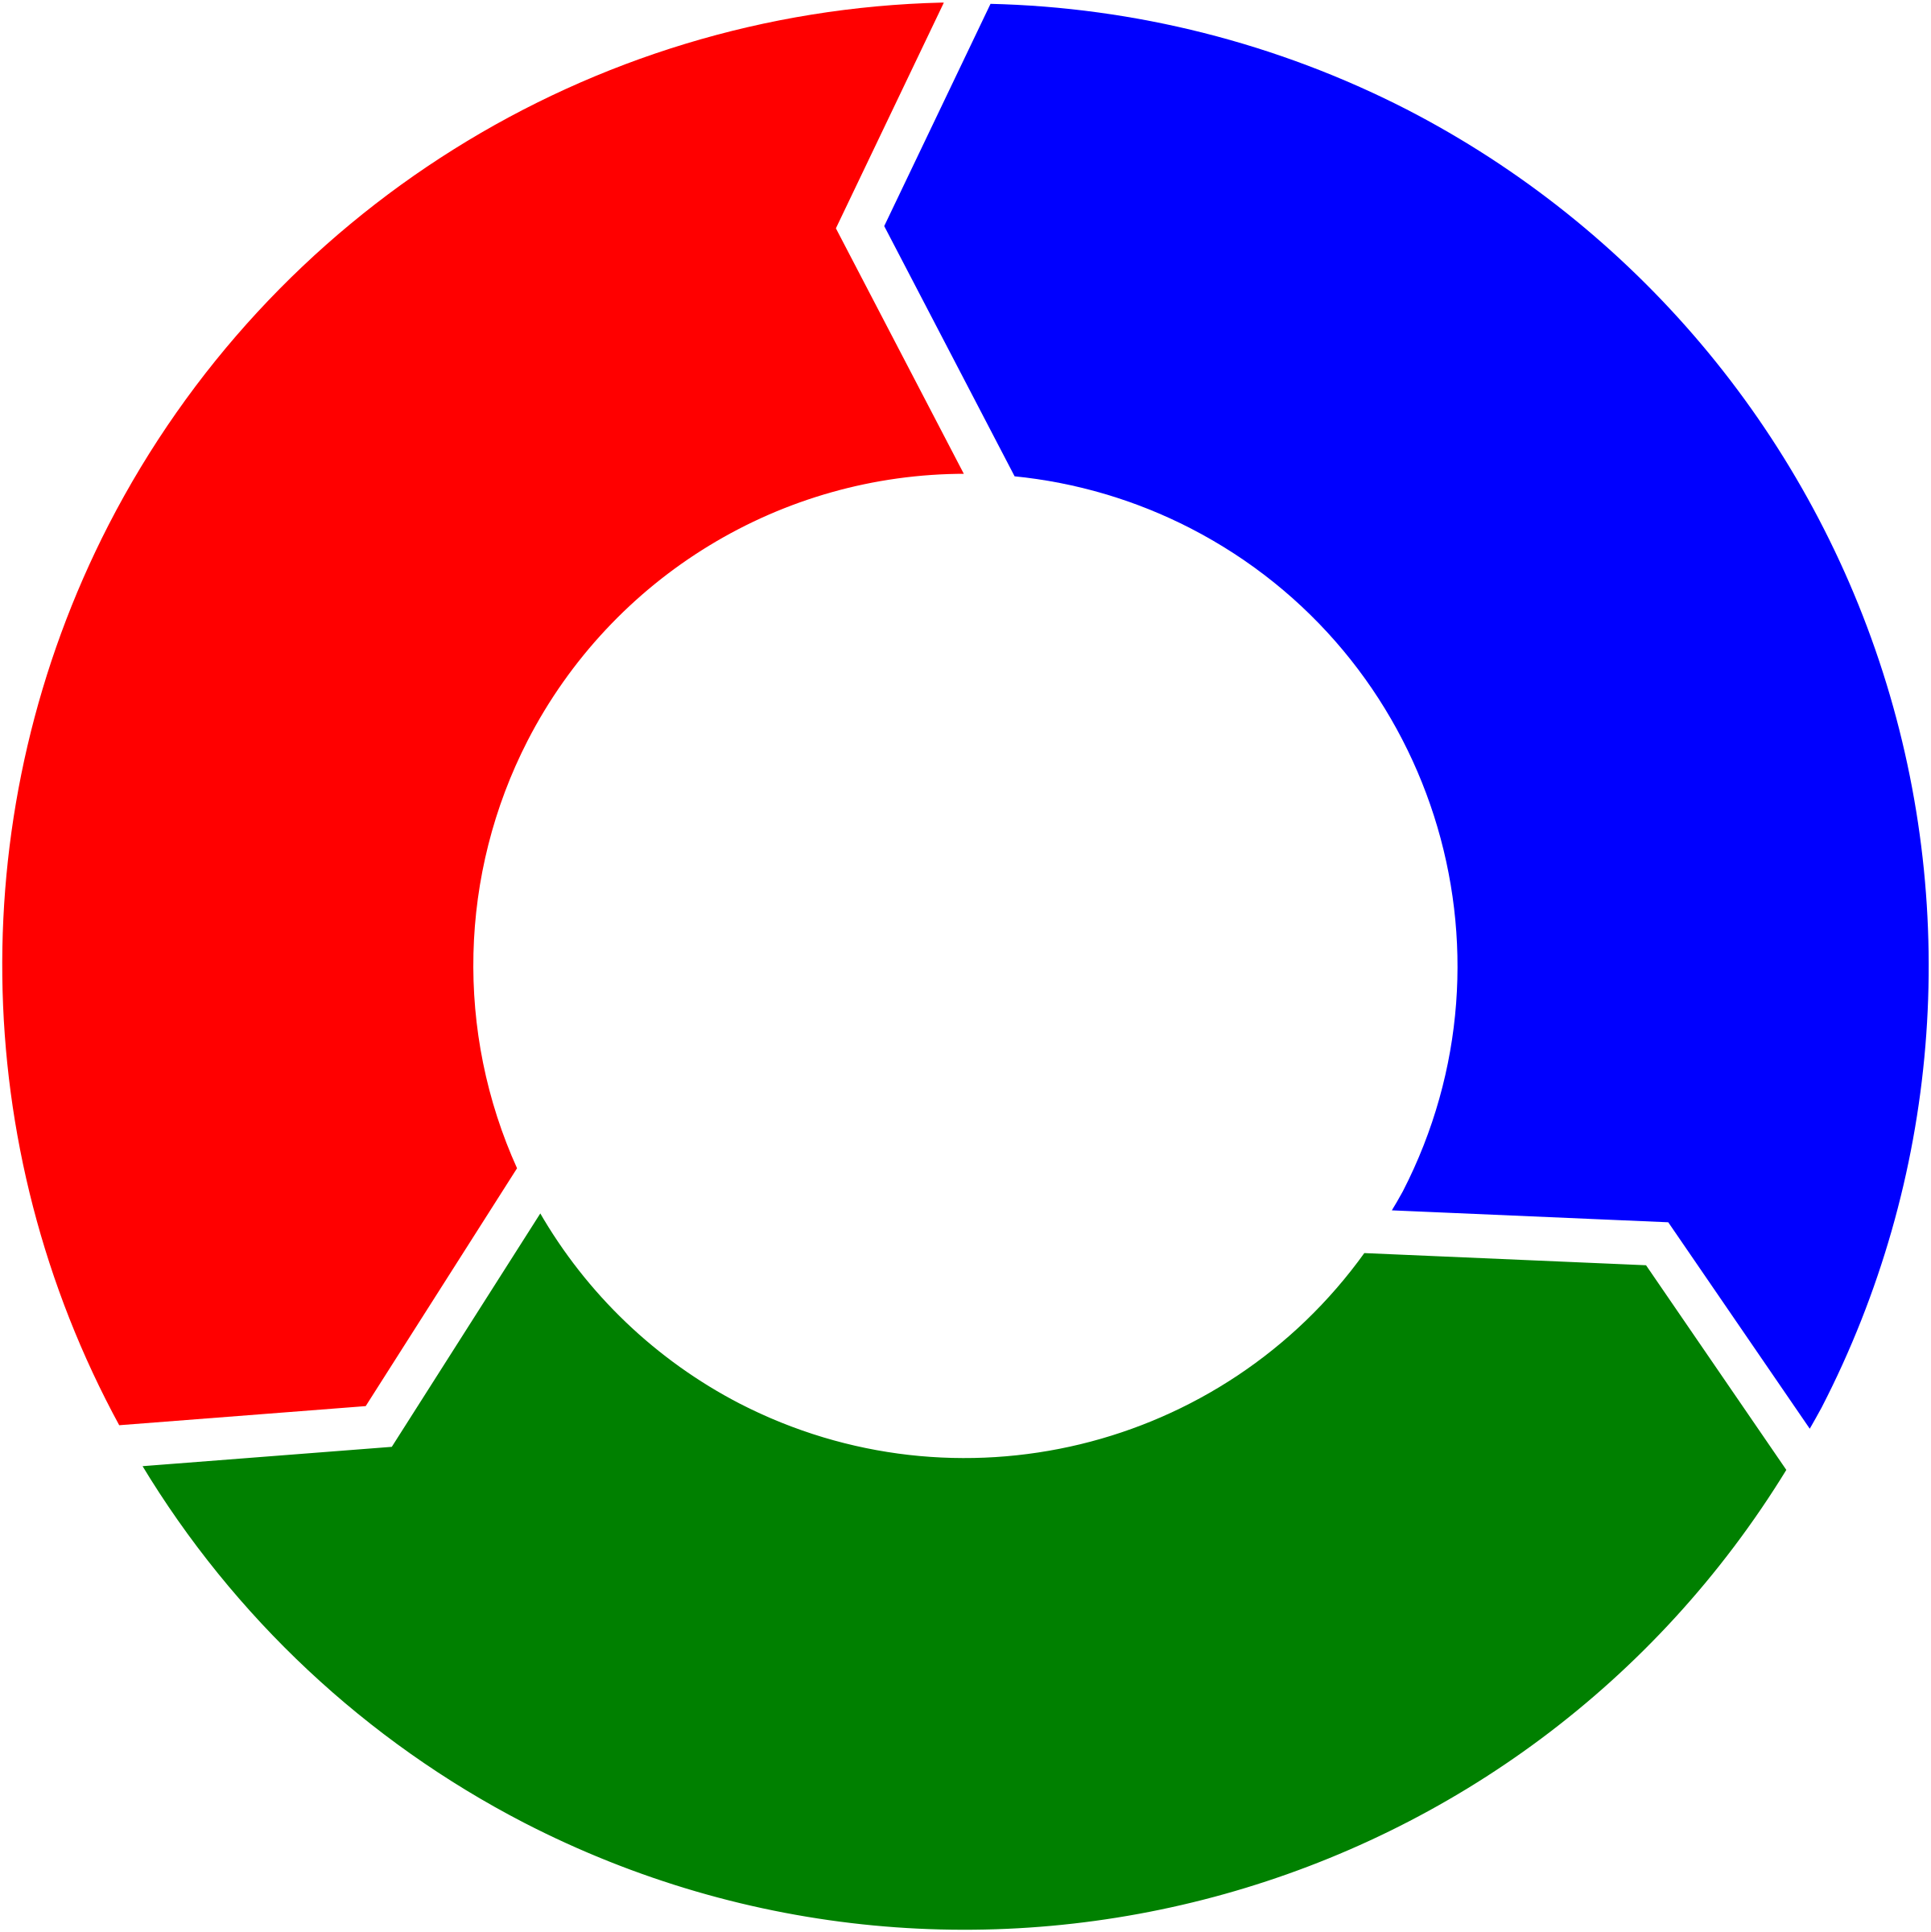 Rgb Circle Arrows By Algotruneman